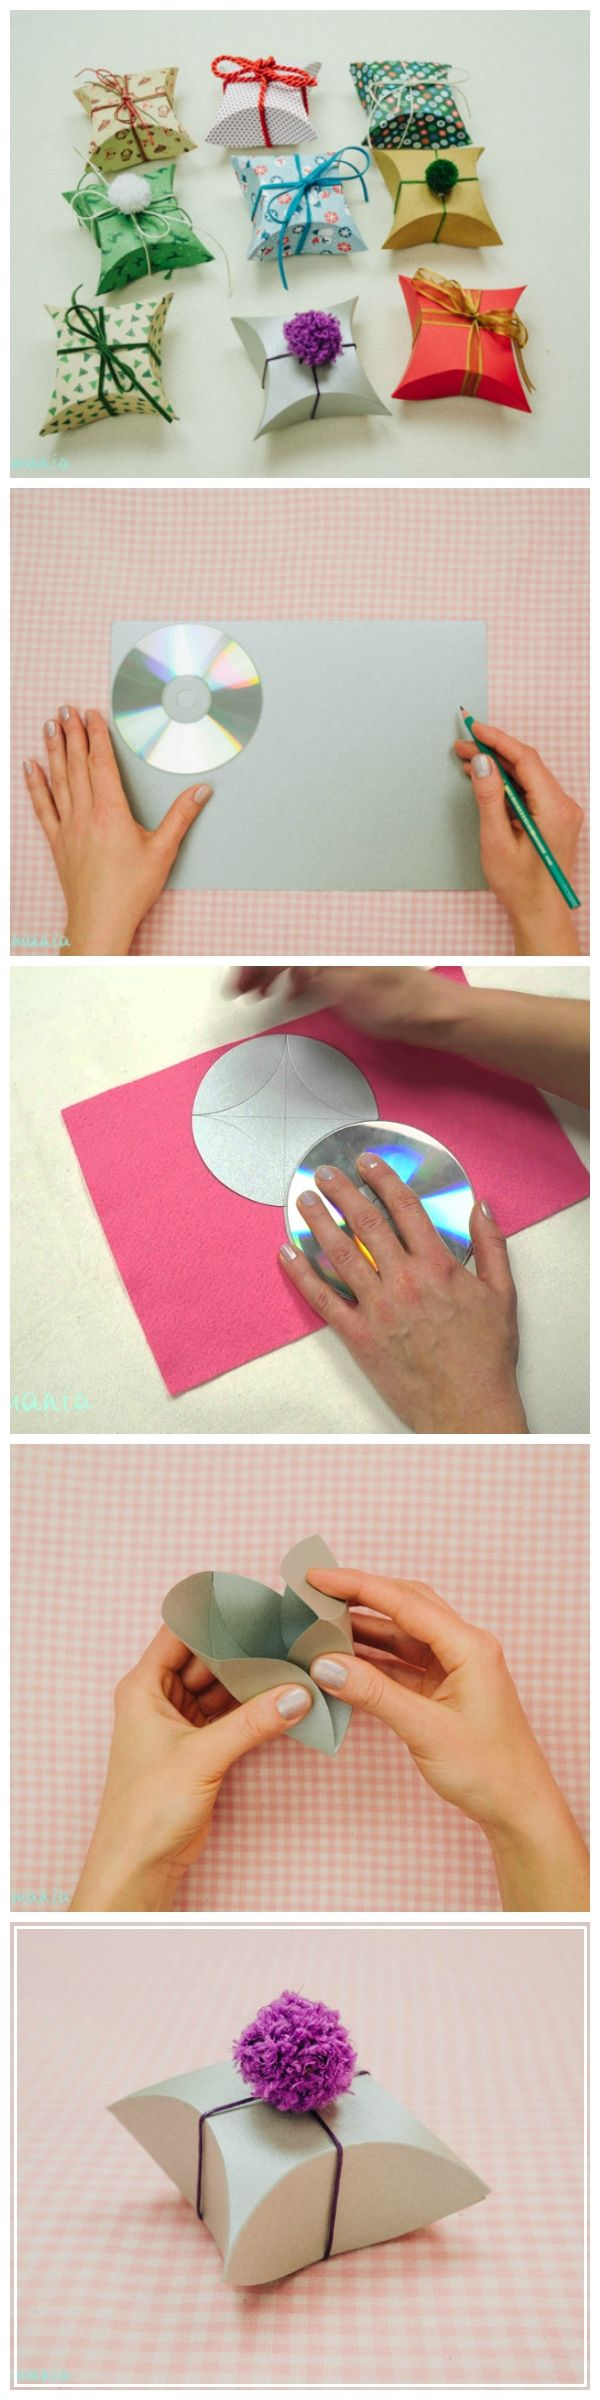 DIY: Beautiful Square Pillow Gift Box Tutorial                                                                                                                                                     More